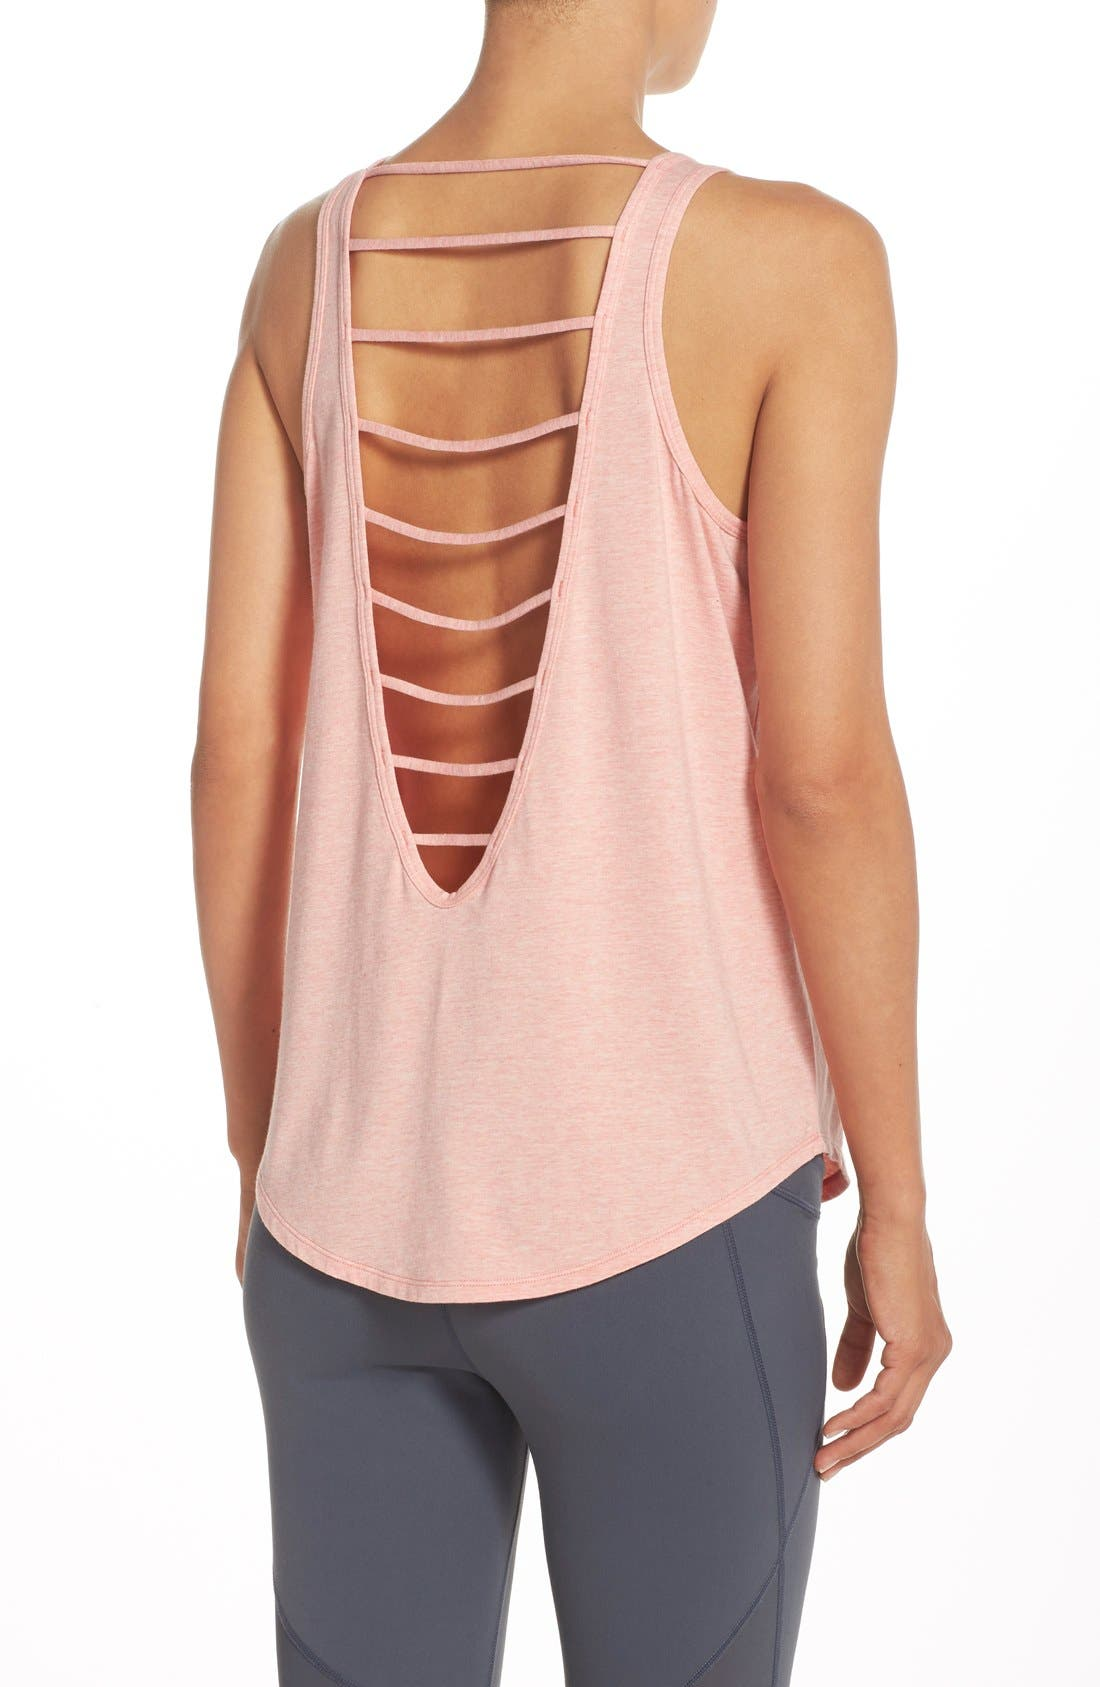 Alternate Image 1 Selected - Zella 'Getaway' Cutout Back Tank